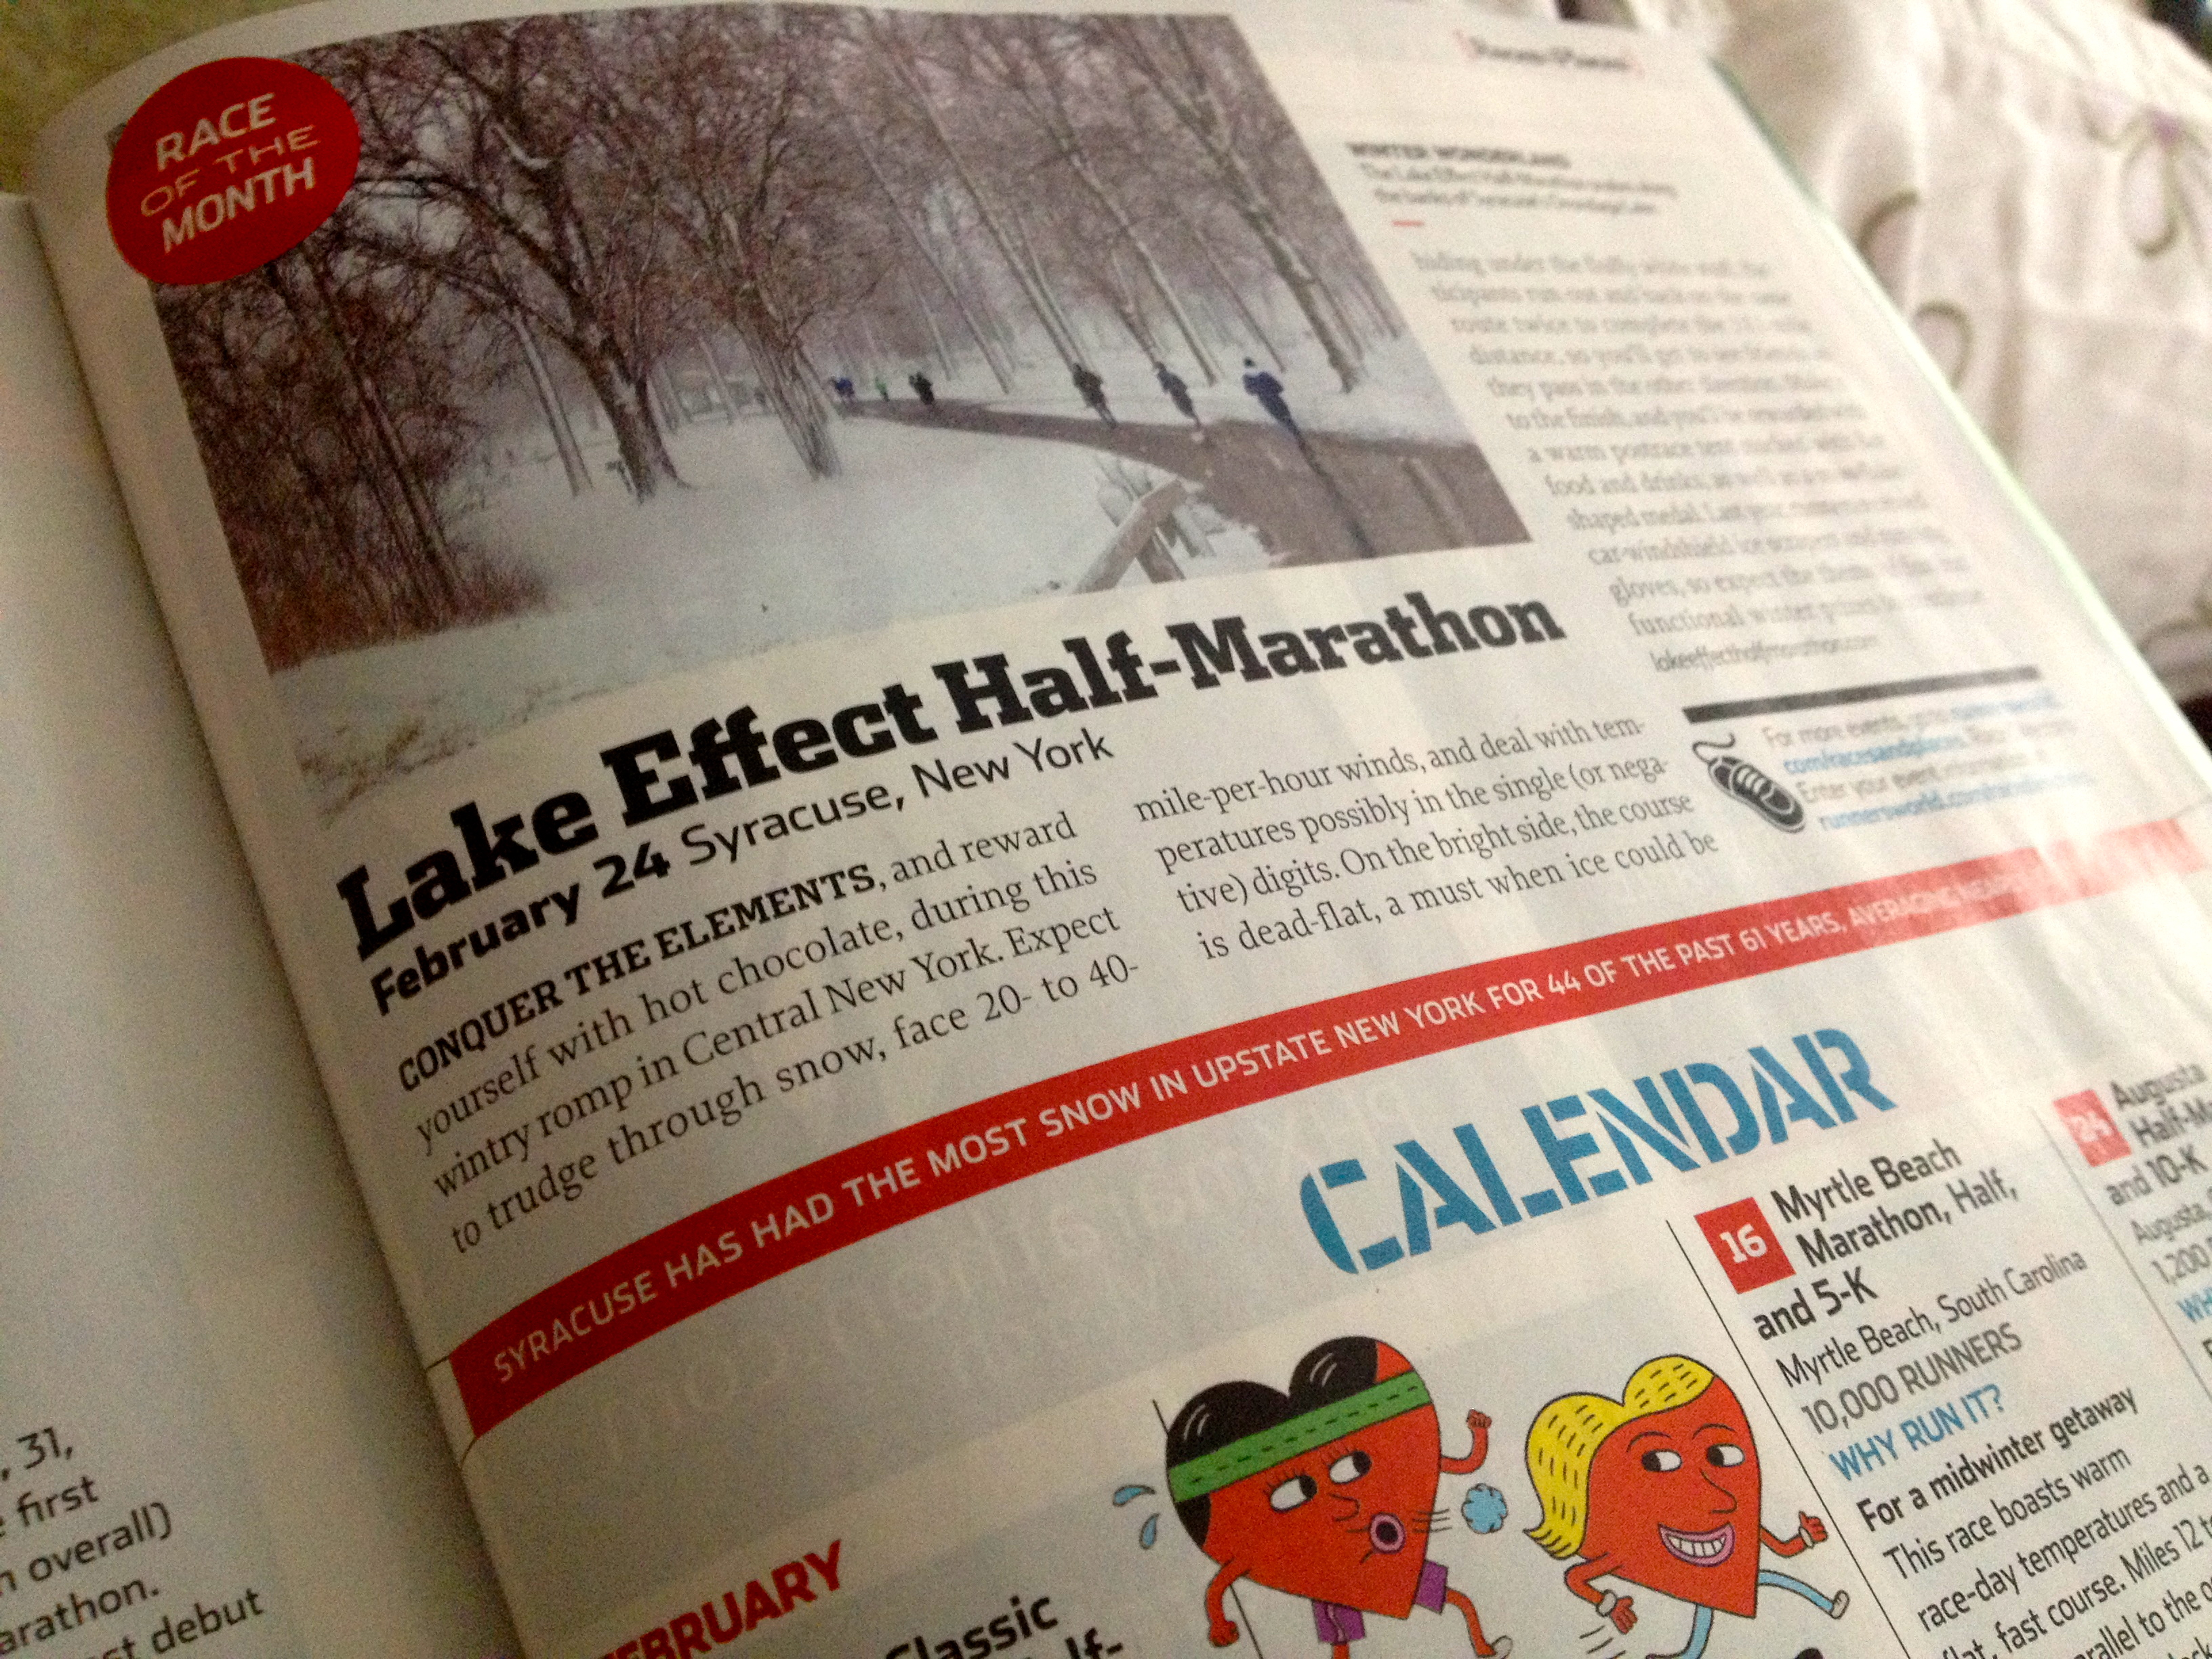 syracuse-lake-effect-half-marathon-runners-world